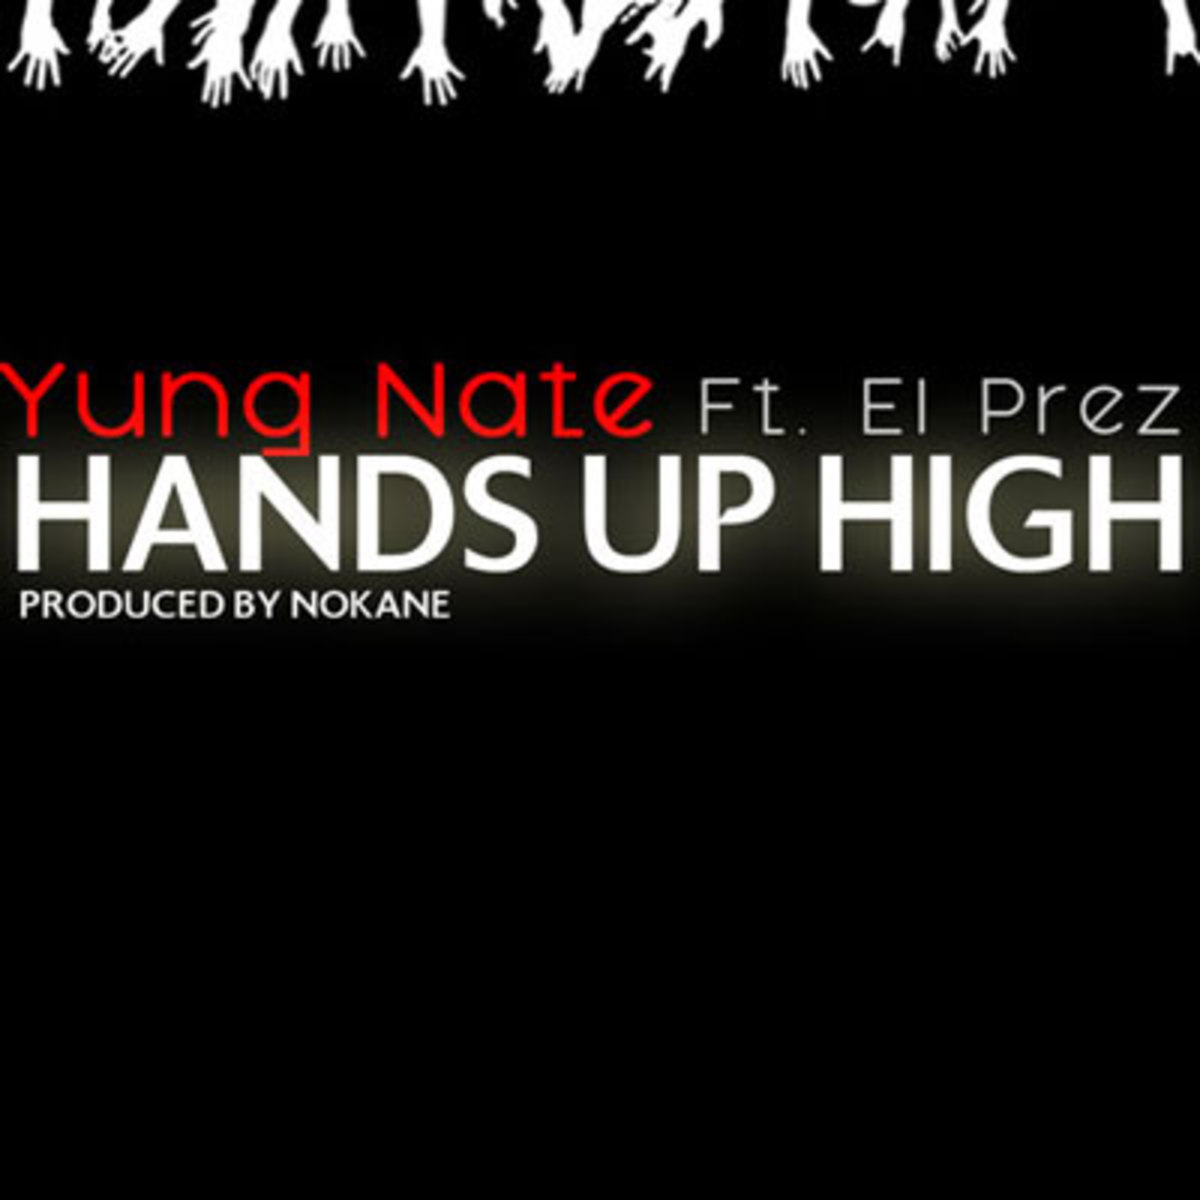 yungnate-handsuphigh.jpg